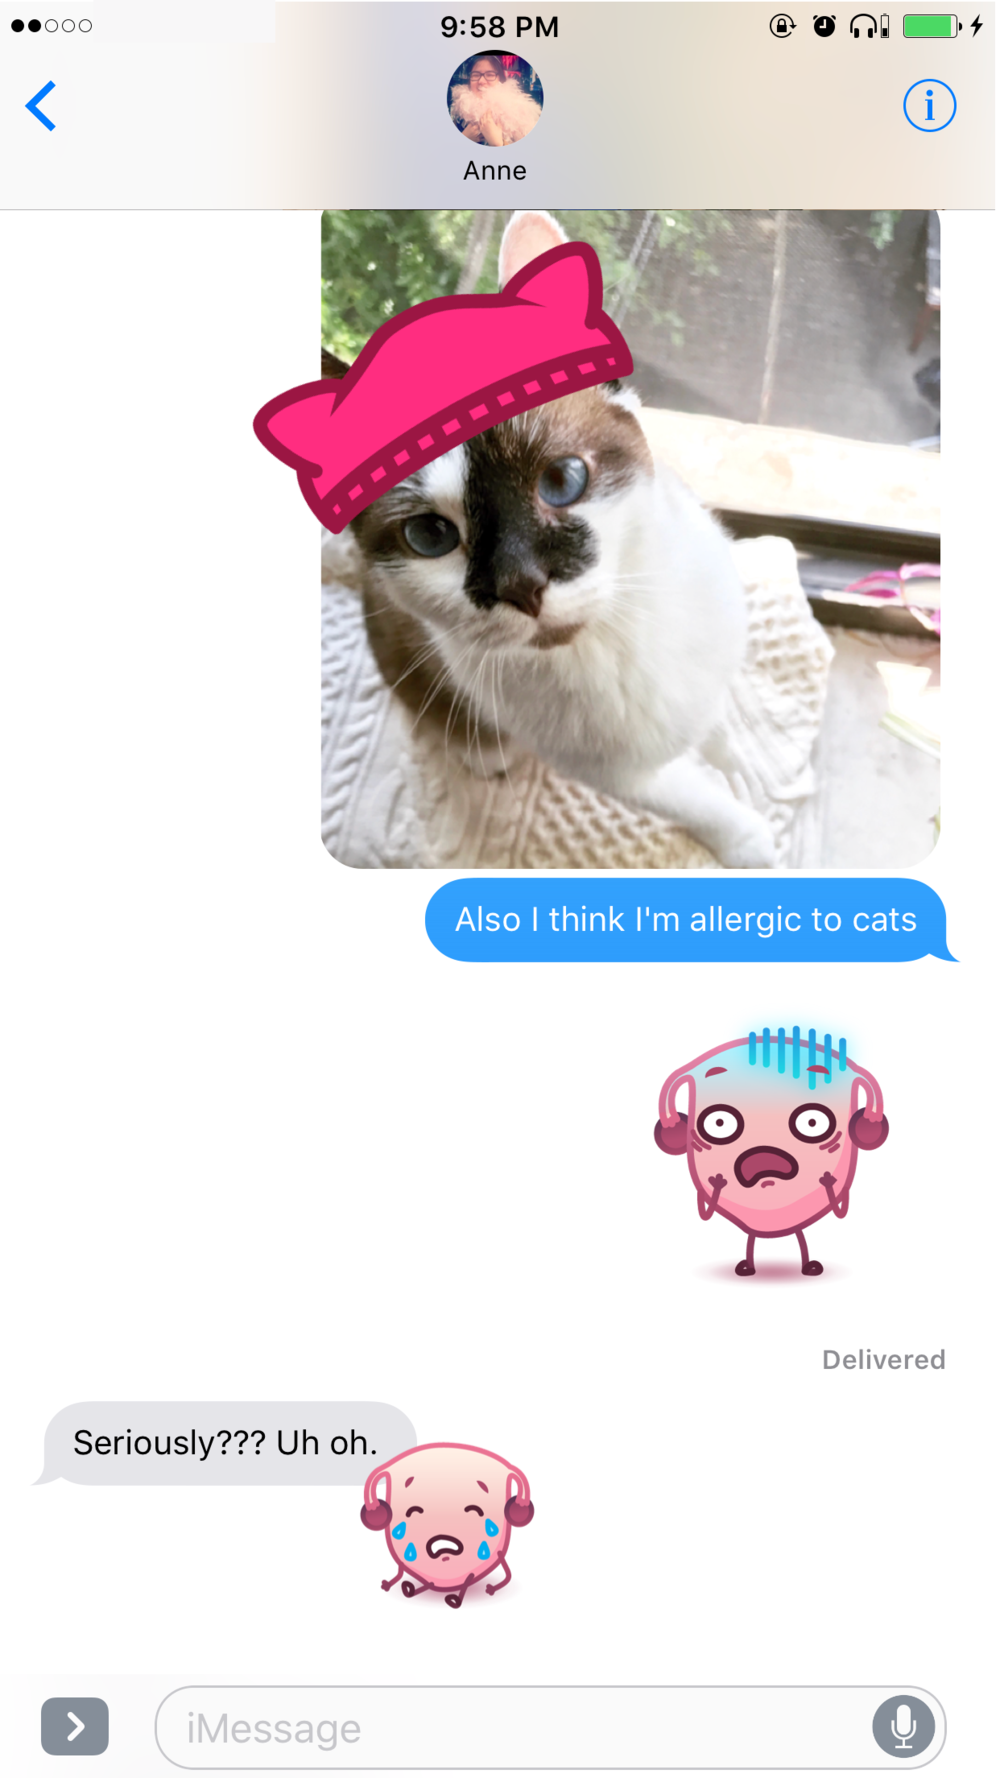 You can also rotate and resize stickers. That's how you perfectly place pussy hats on photos of everyone you know.